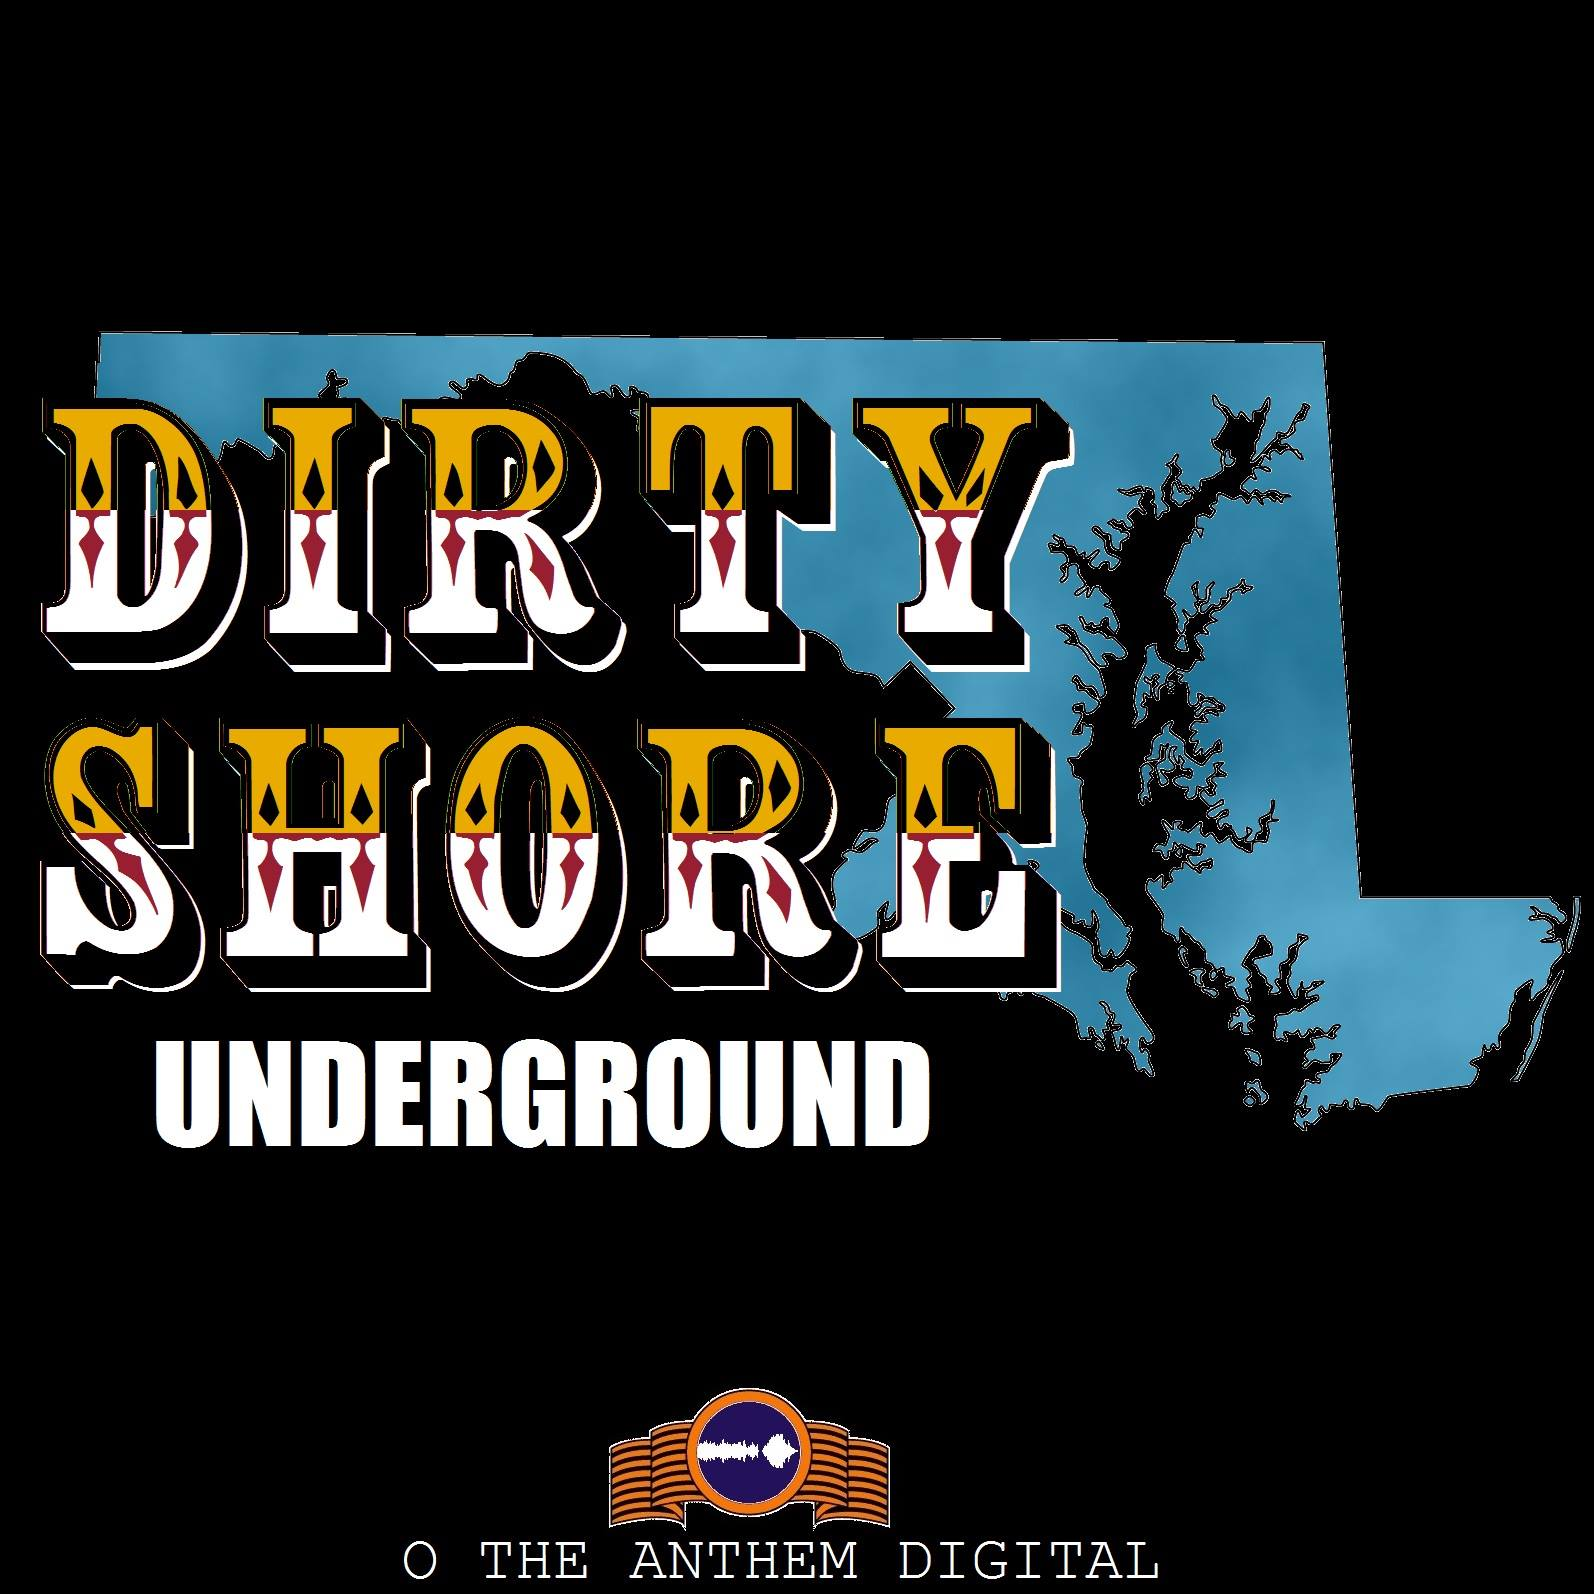 Podcast – Dirty Shore Underground